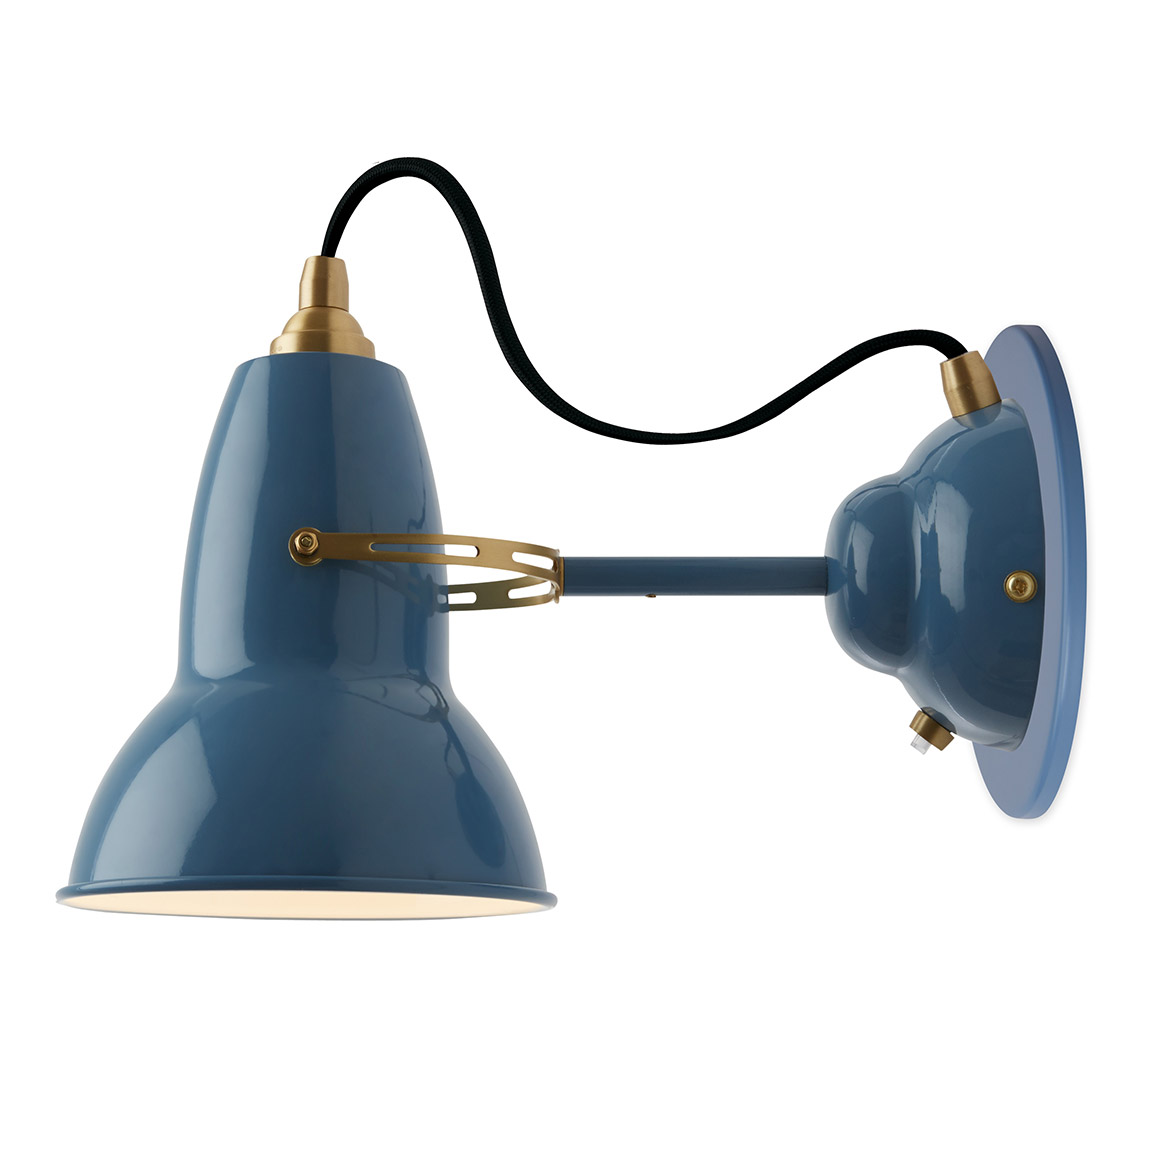 Original 1227 Brass Wall Light by Anglepoise | ANG-31527  sc 1 st  Lightology & 1227 Brass Wall Light by Anglepoise | ANG-31527 azcodes.com